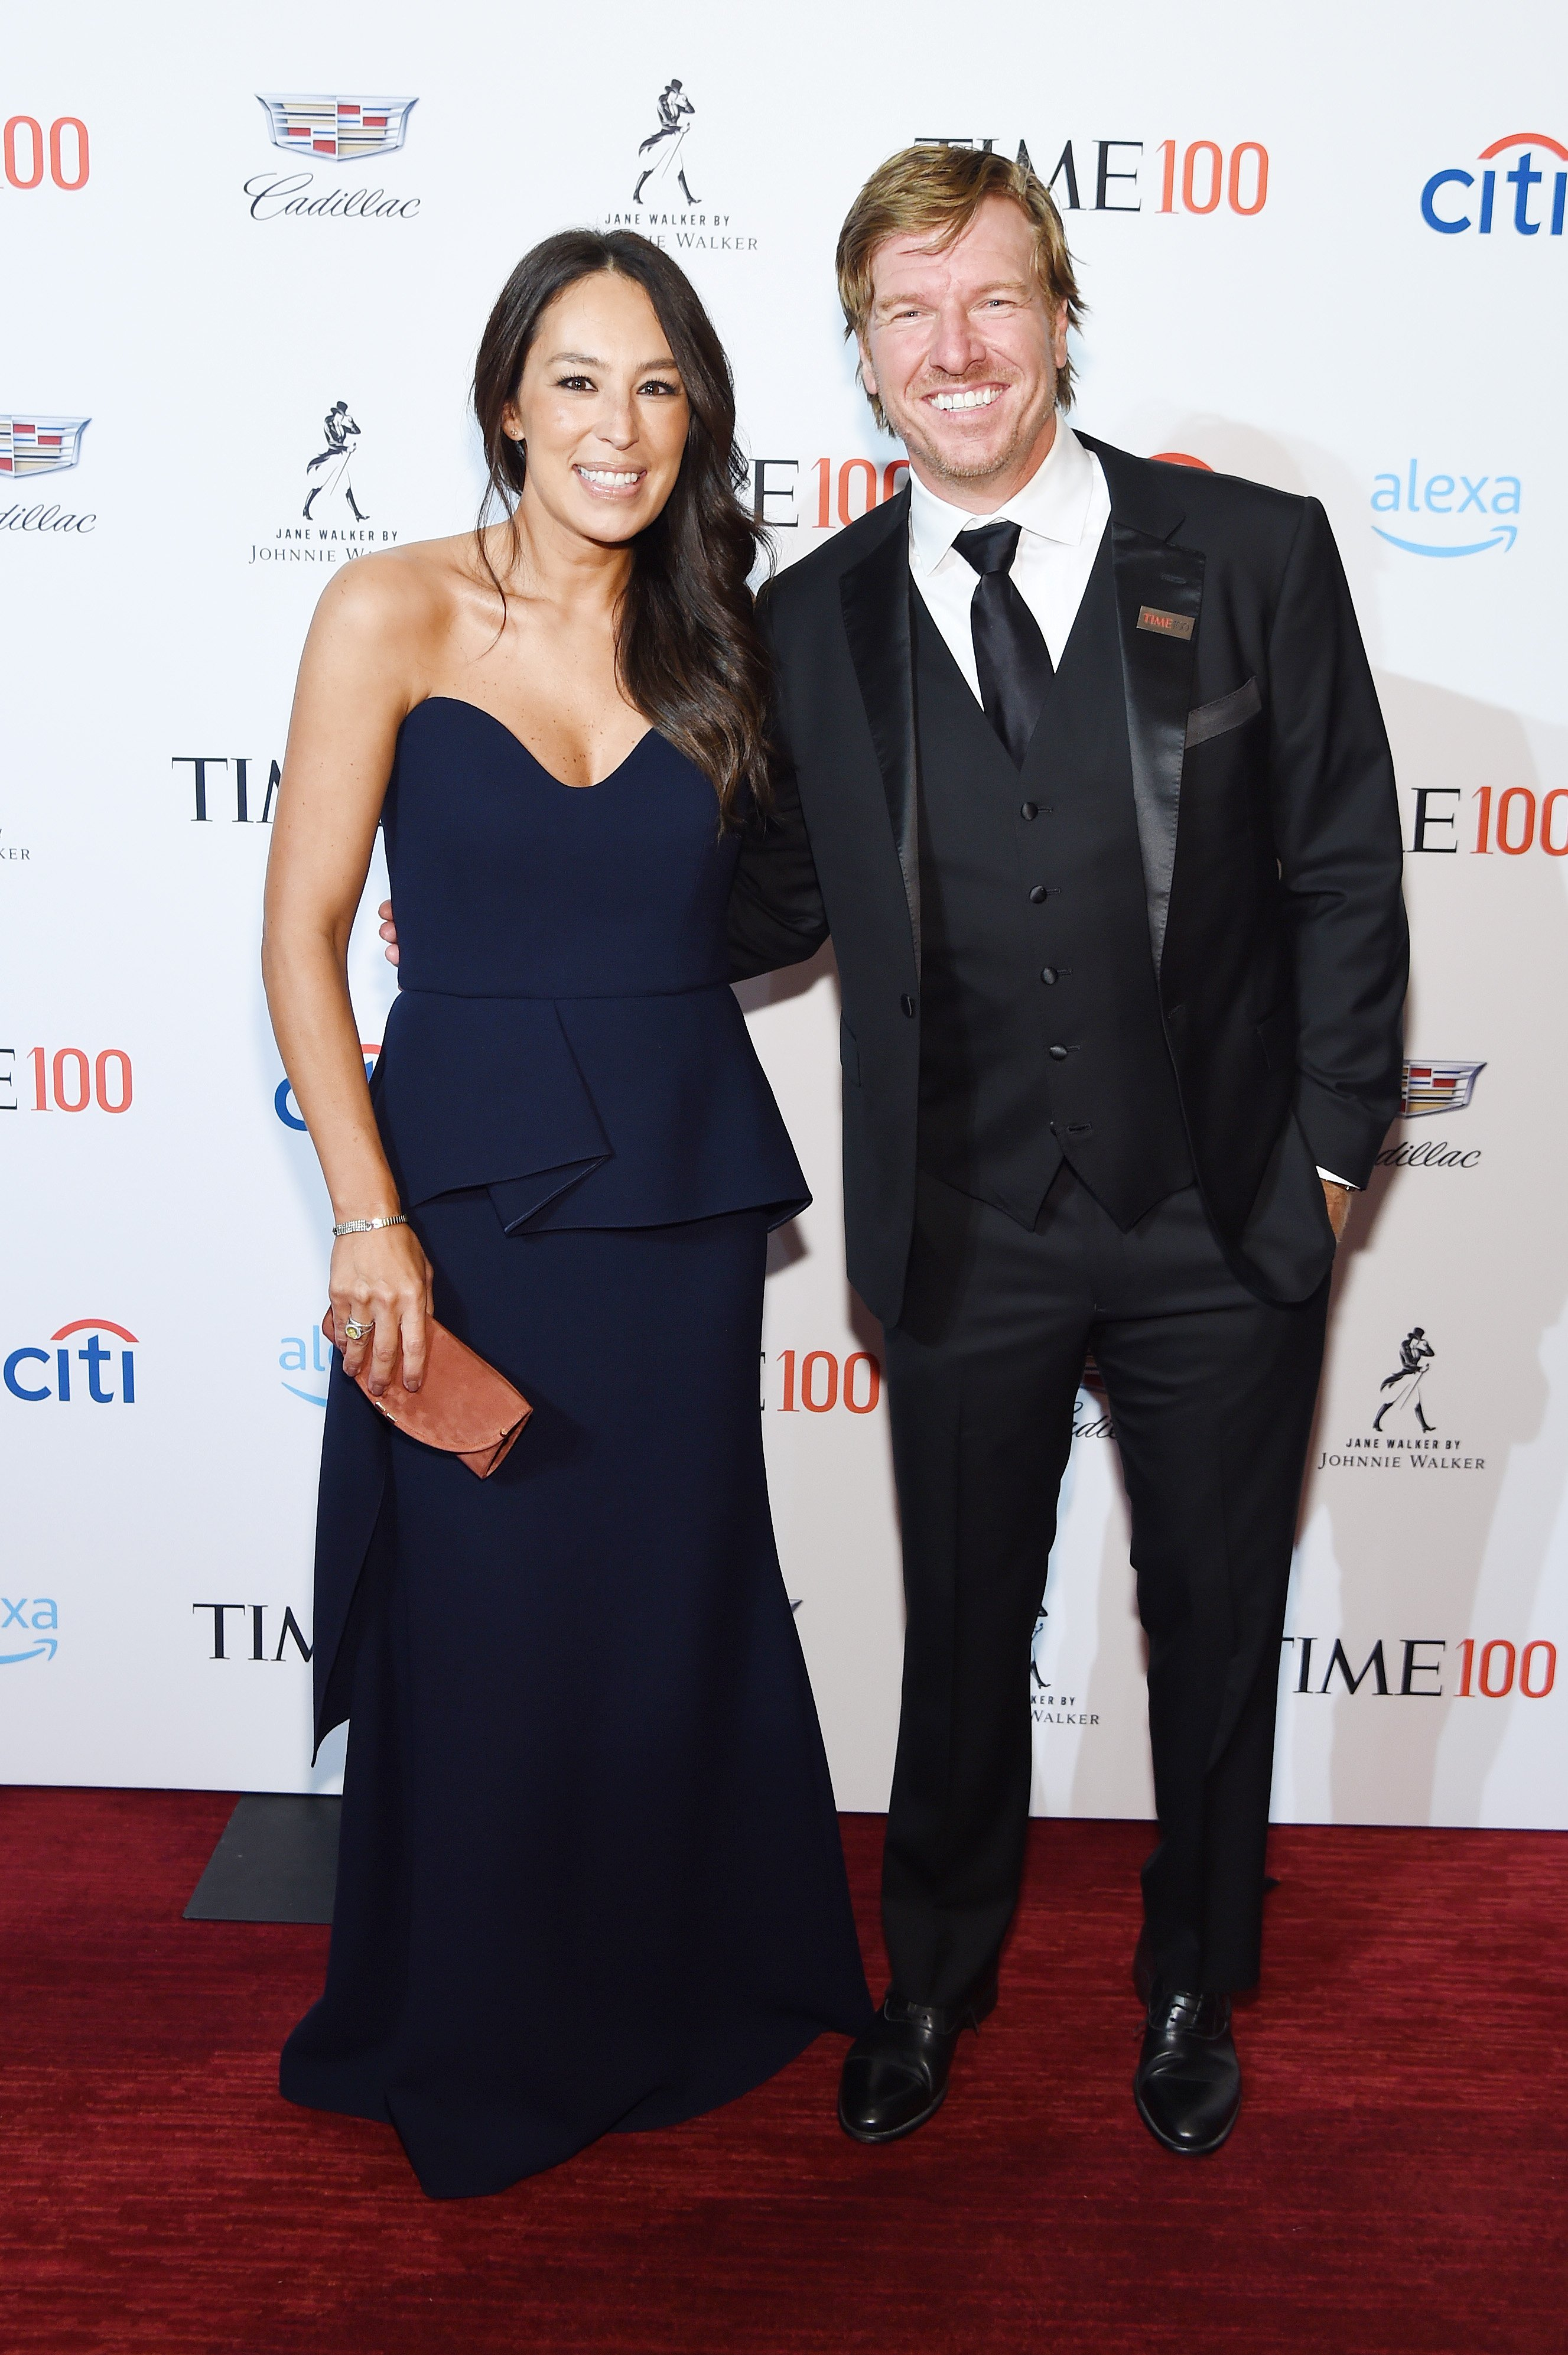 Joanna Gaines and Chip Gaines attend the TIME 100 Gala 2019 Cocktails at Jazz at Lincoln Center on April 23, 2019 in New York City | Photo: GettyImages